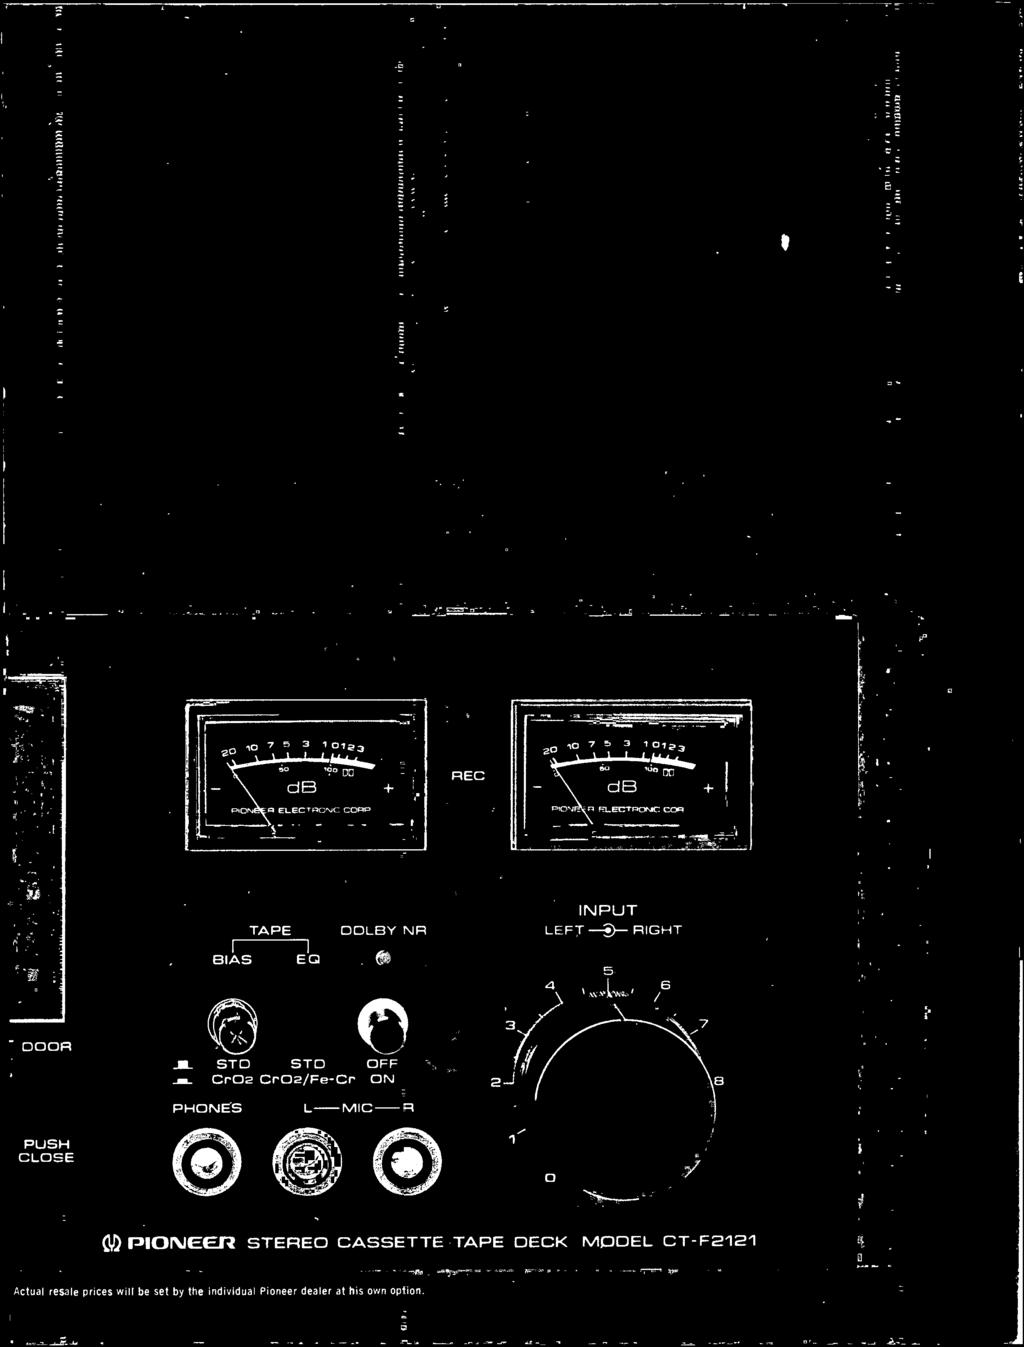 The Most Extraordinary Cassette Deck Value Ever Offered Full Shop Square D Homeline 40amp 2pole Circuit Breaker At Lowescom Actual Resale Prices Will Be Set By